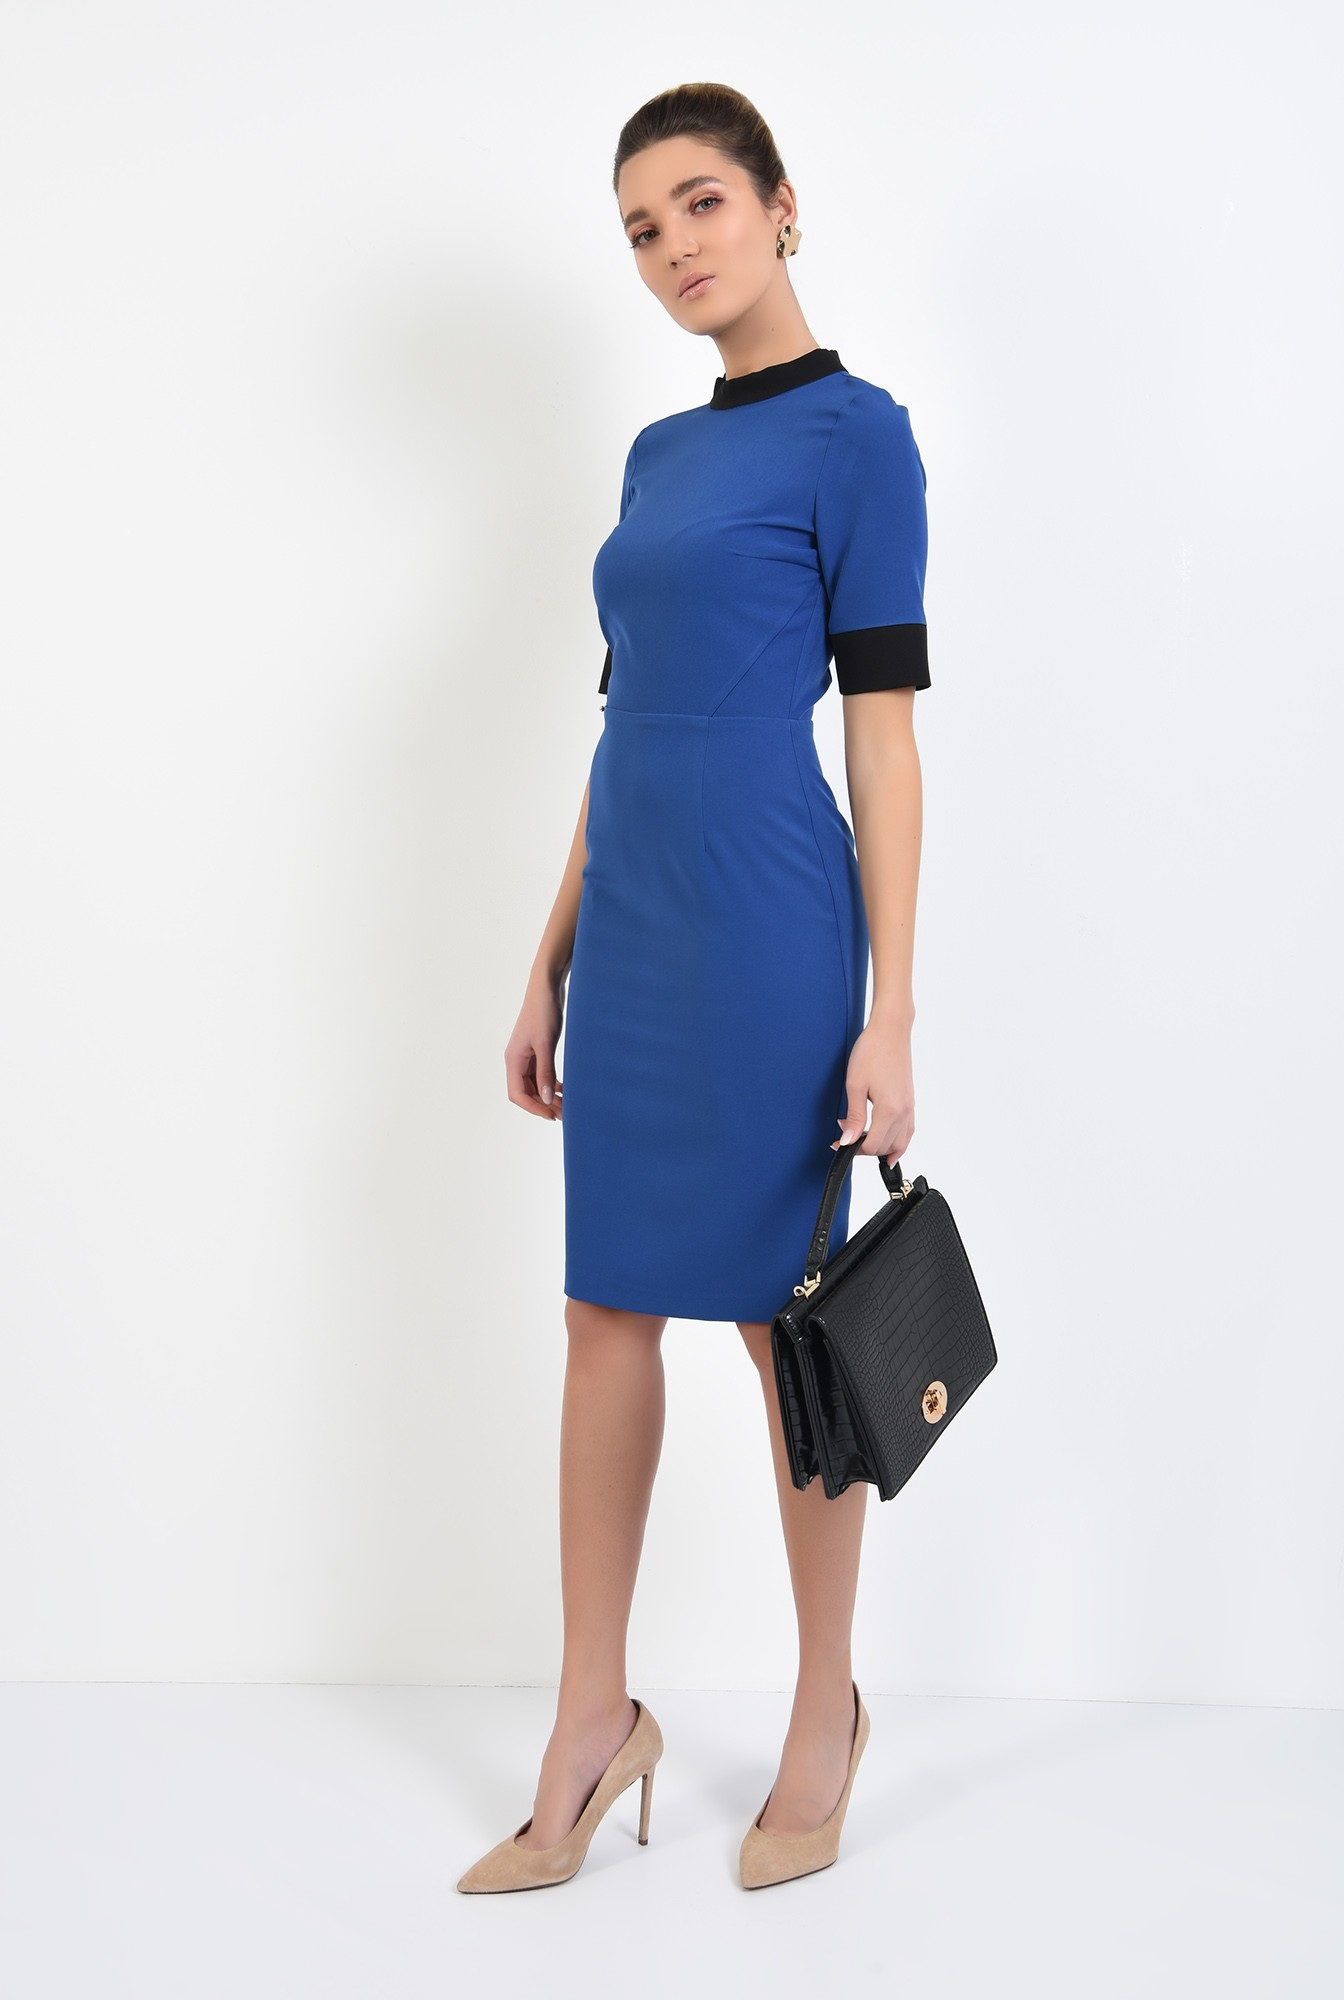 3 - rochie office, midi, conica, maneci scurte, borduri in contrast